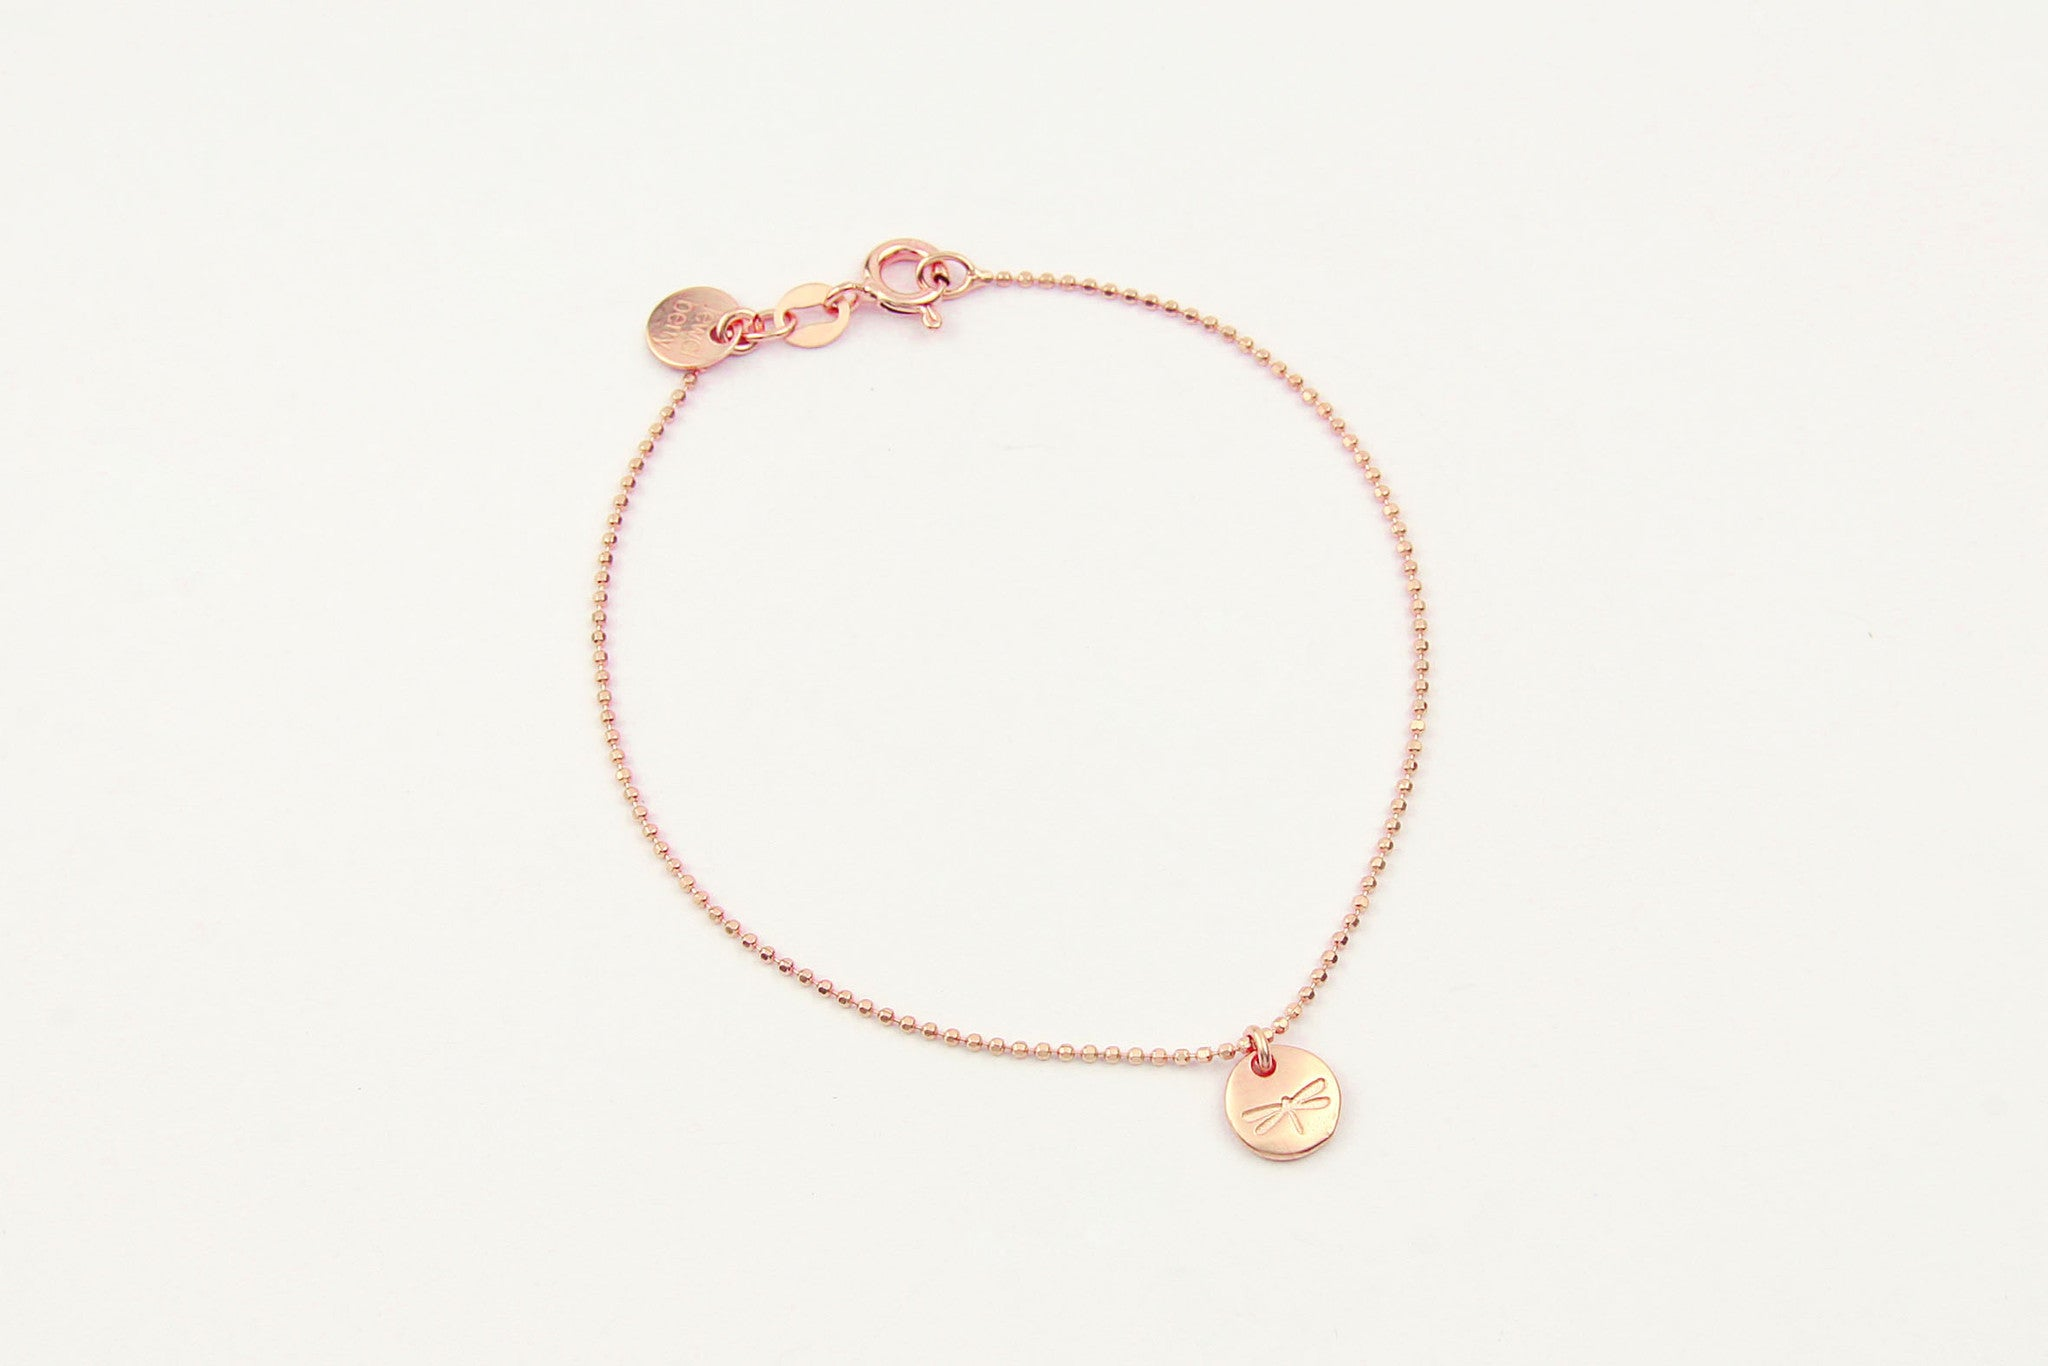 jewelberry armband bracelet dragonfly token rose gold plated sterling silver fine jewelry handmade with love fairtrade bead chain